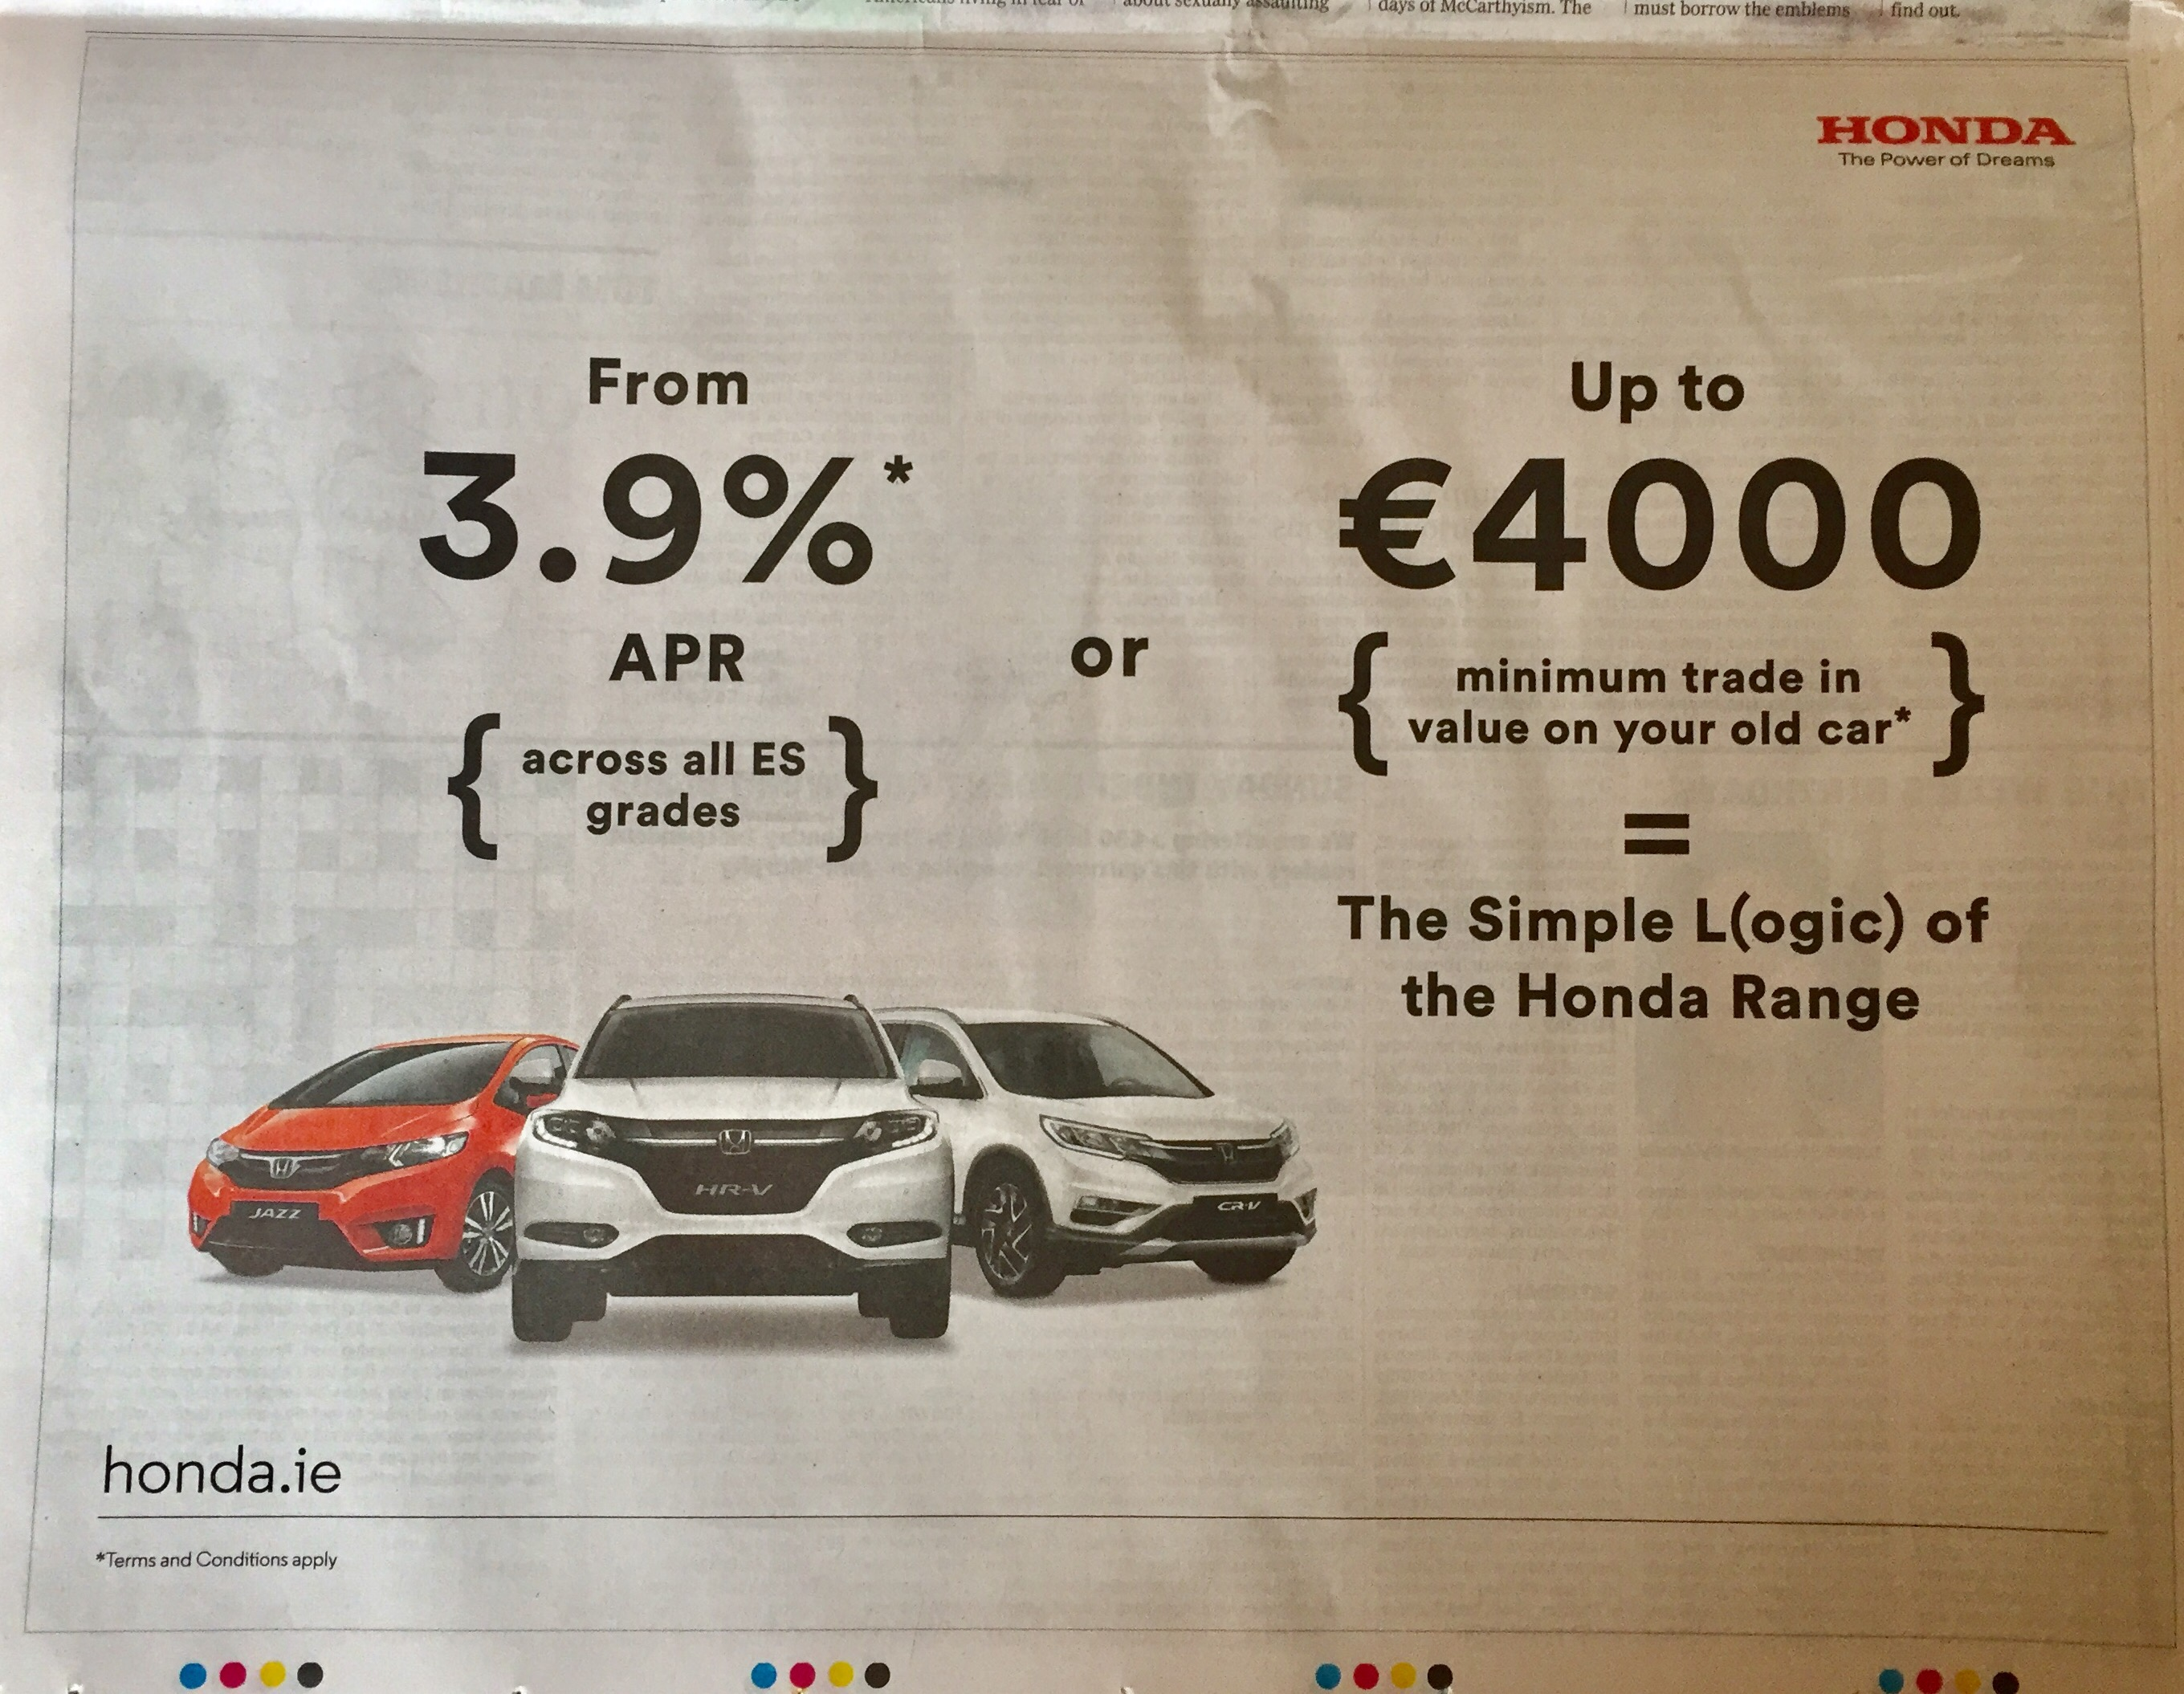 Honda – from 3.9%apr or up to €4000